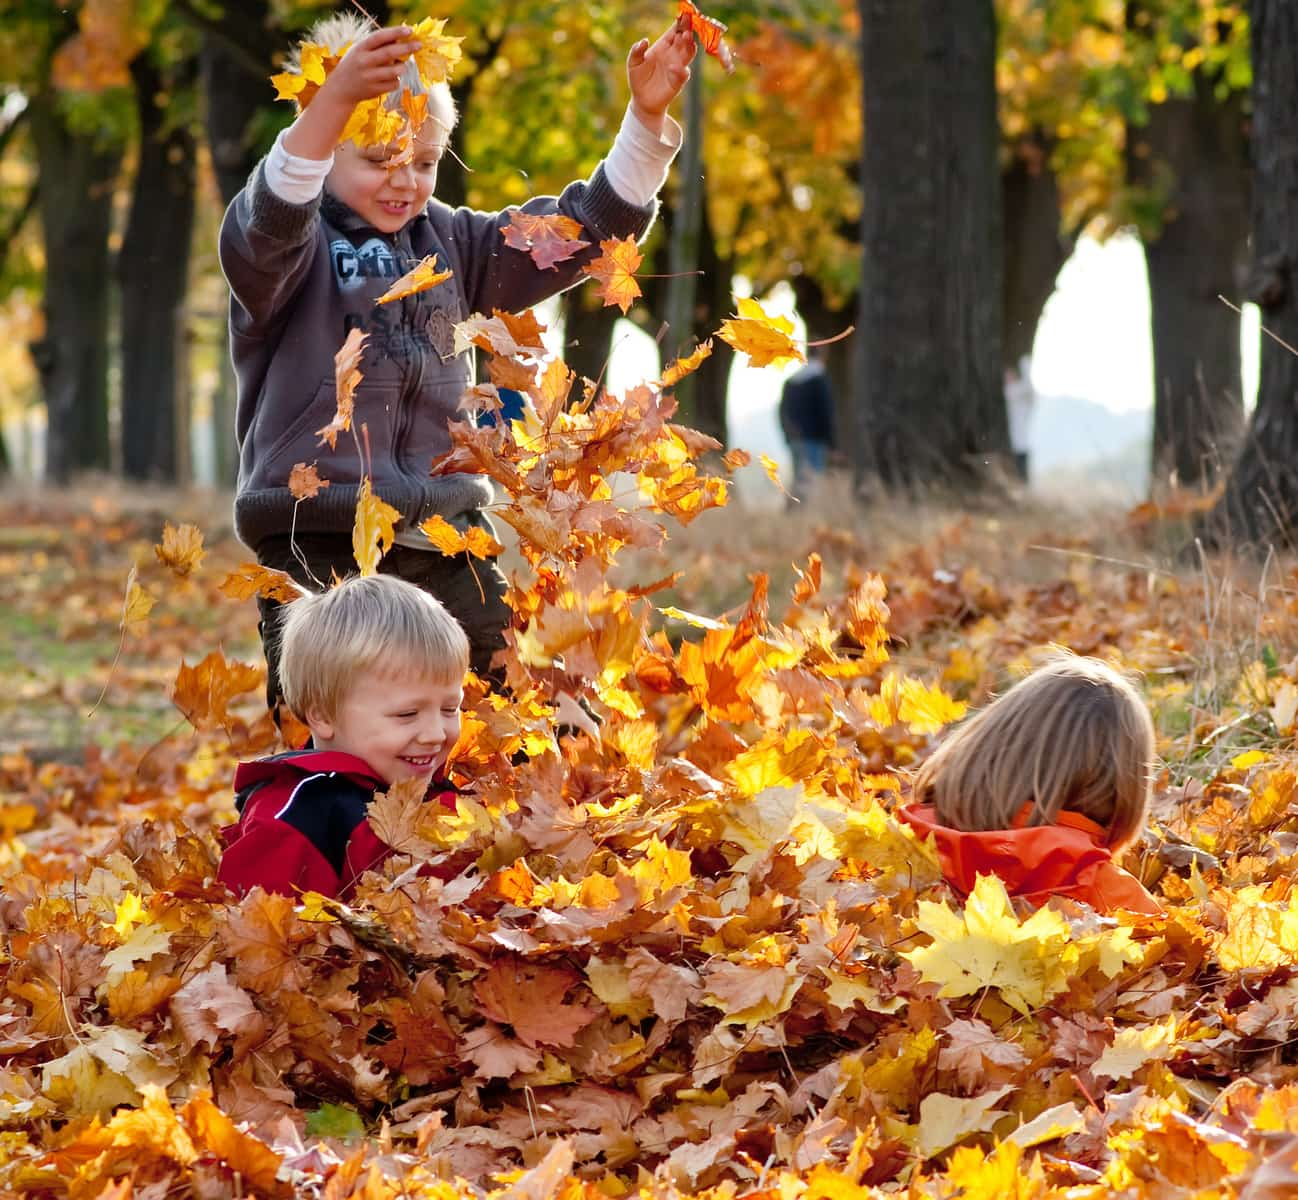 Article: 30 Best Things To Do in the Fall with Toronto Kids